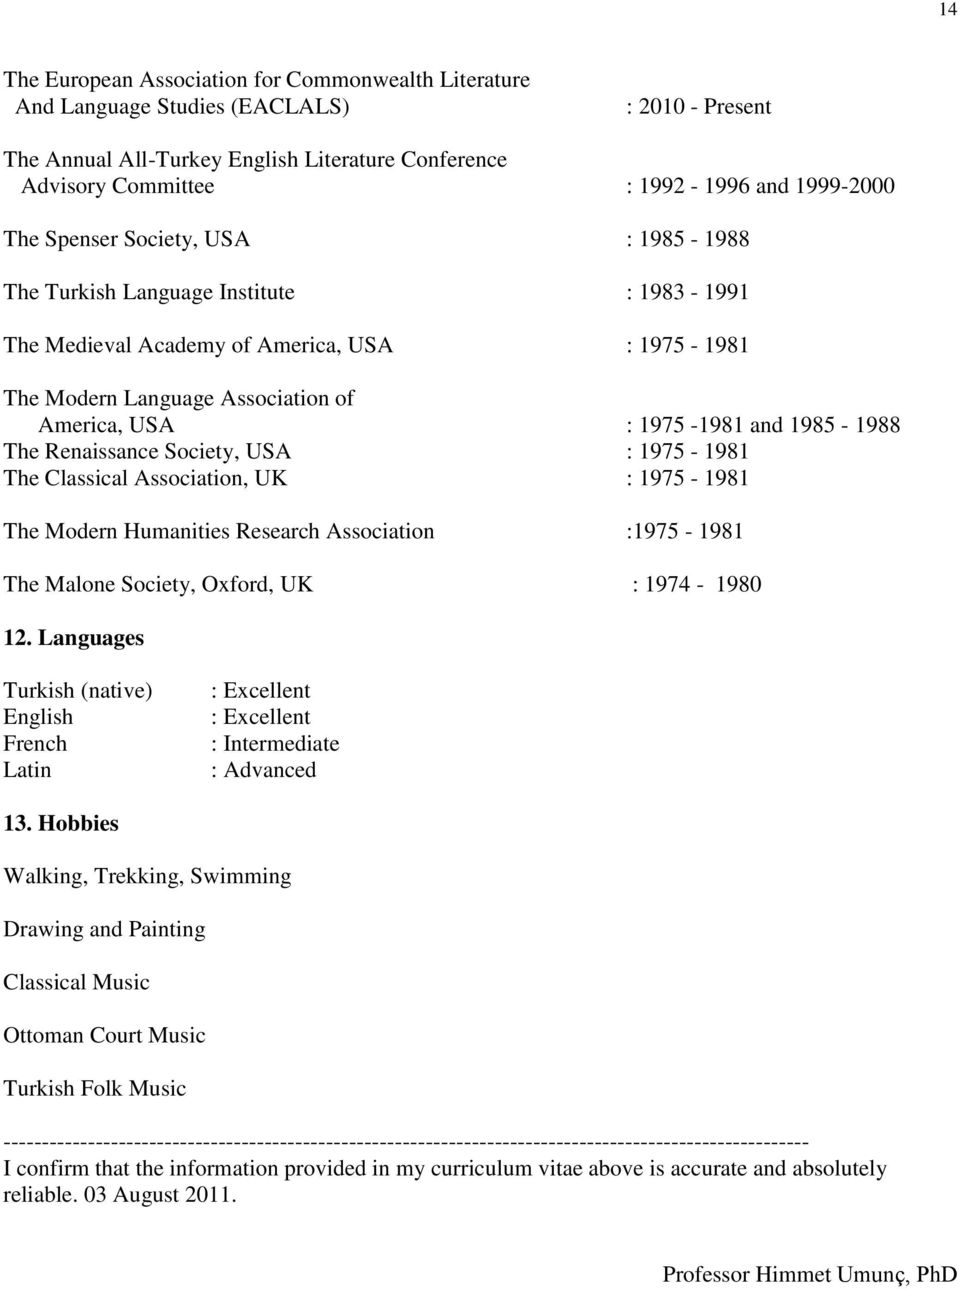 and 1985-1988 The Renaissance Society, USA : 1975-1981 The Classical Association, UK : 1975-1981 The Modern Humanities Research Association :1975-1981 The Malone Society, Oxford, UK : 1974-1980 12.